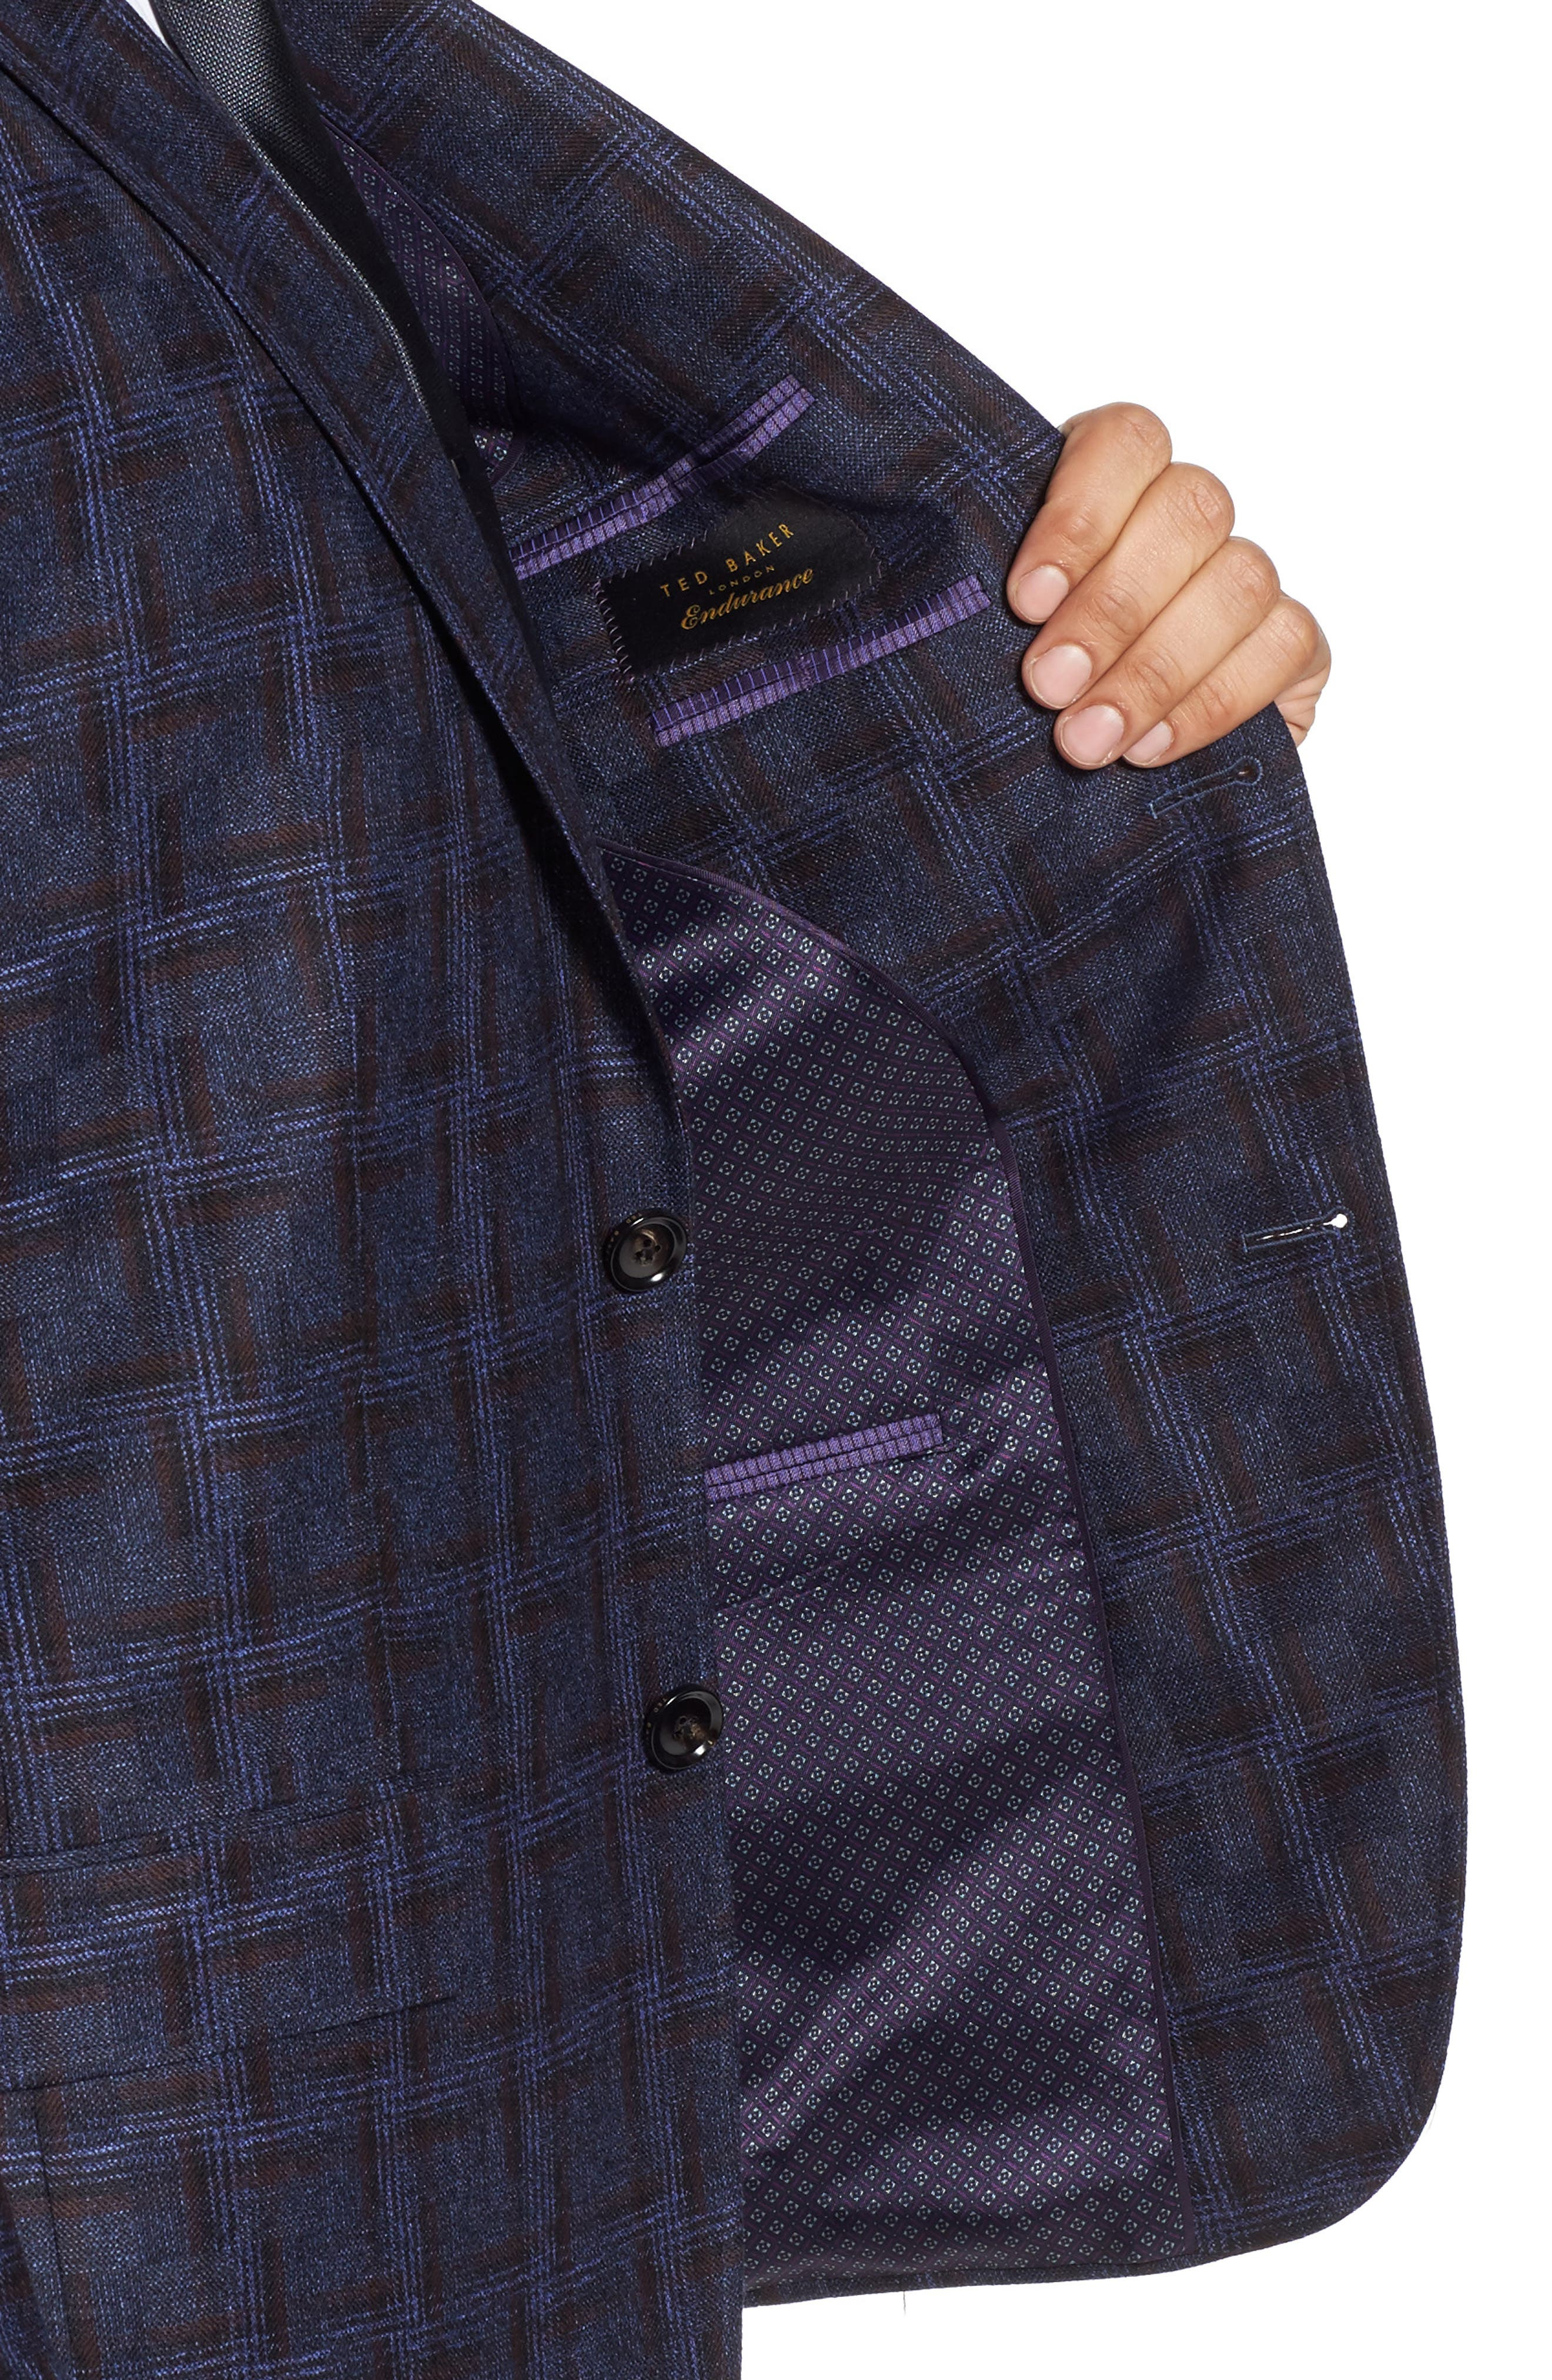 Jay Trim Fit Plaid Wool Sport Coat,                             Alternate thumbnail 4, color,